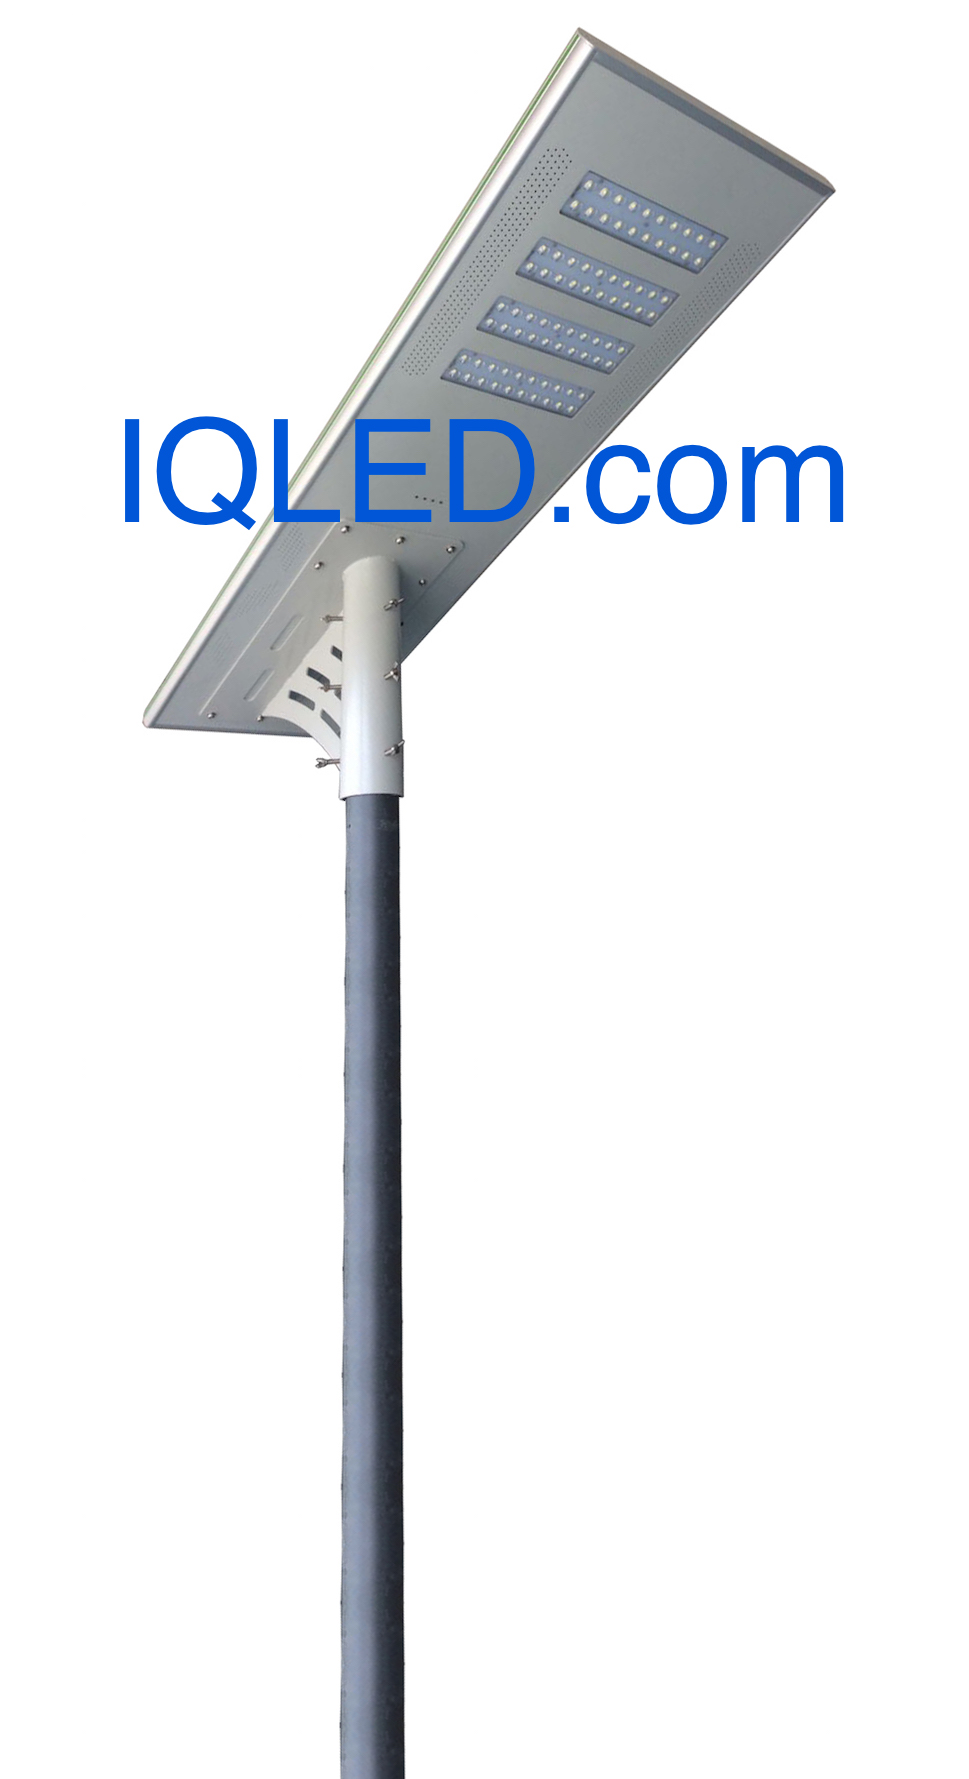 IQLED.com Airport Security Lighting Solar Light all in one integrated 8800 Lumens 80 Watts